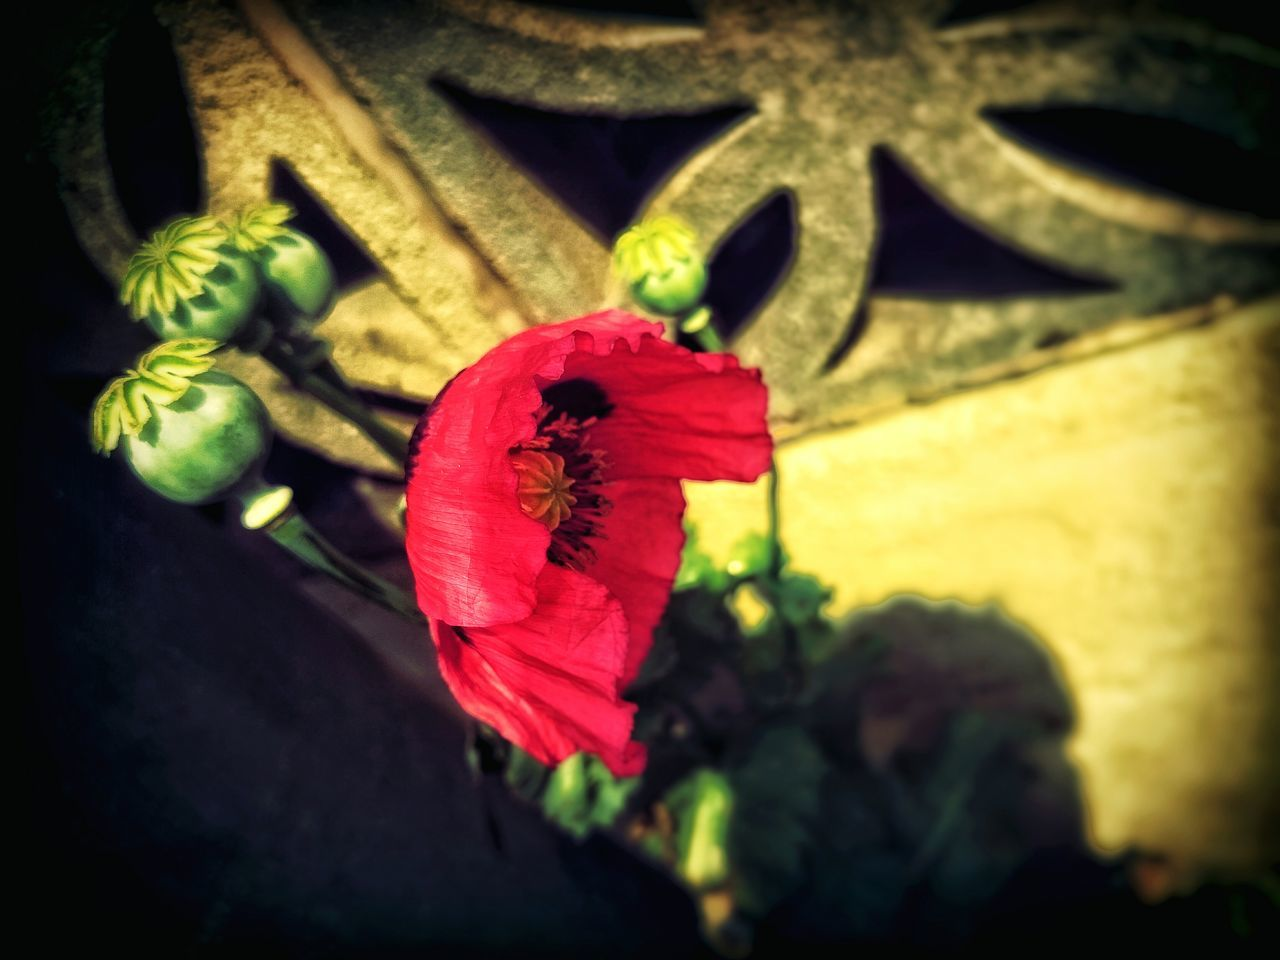 flower, petal, red, fragility, flower head, no people, beauty in nature, nature, poppy, freshness, close-up, plant, growth, hibiscus, day, outdoors